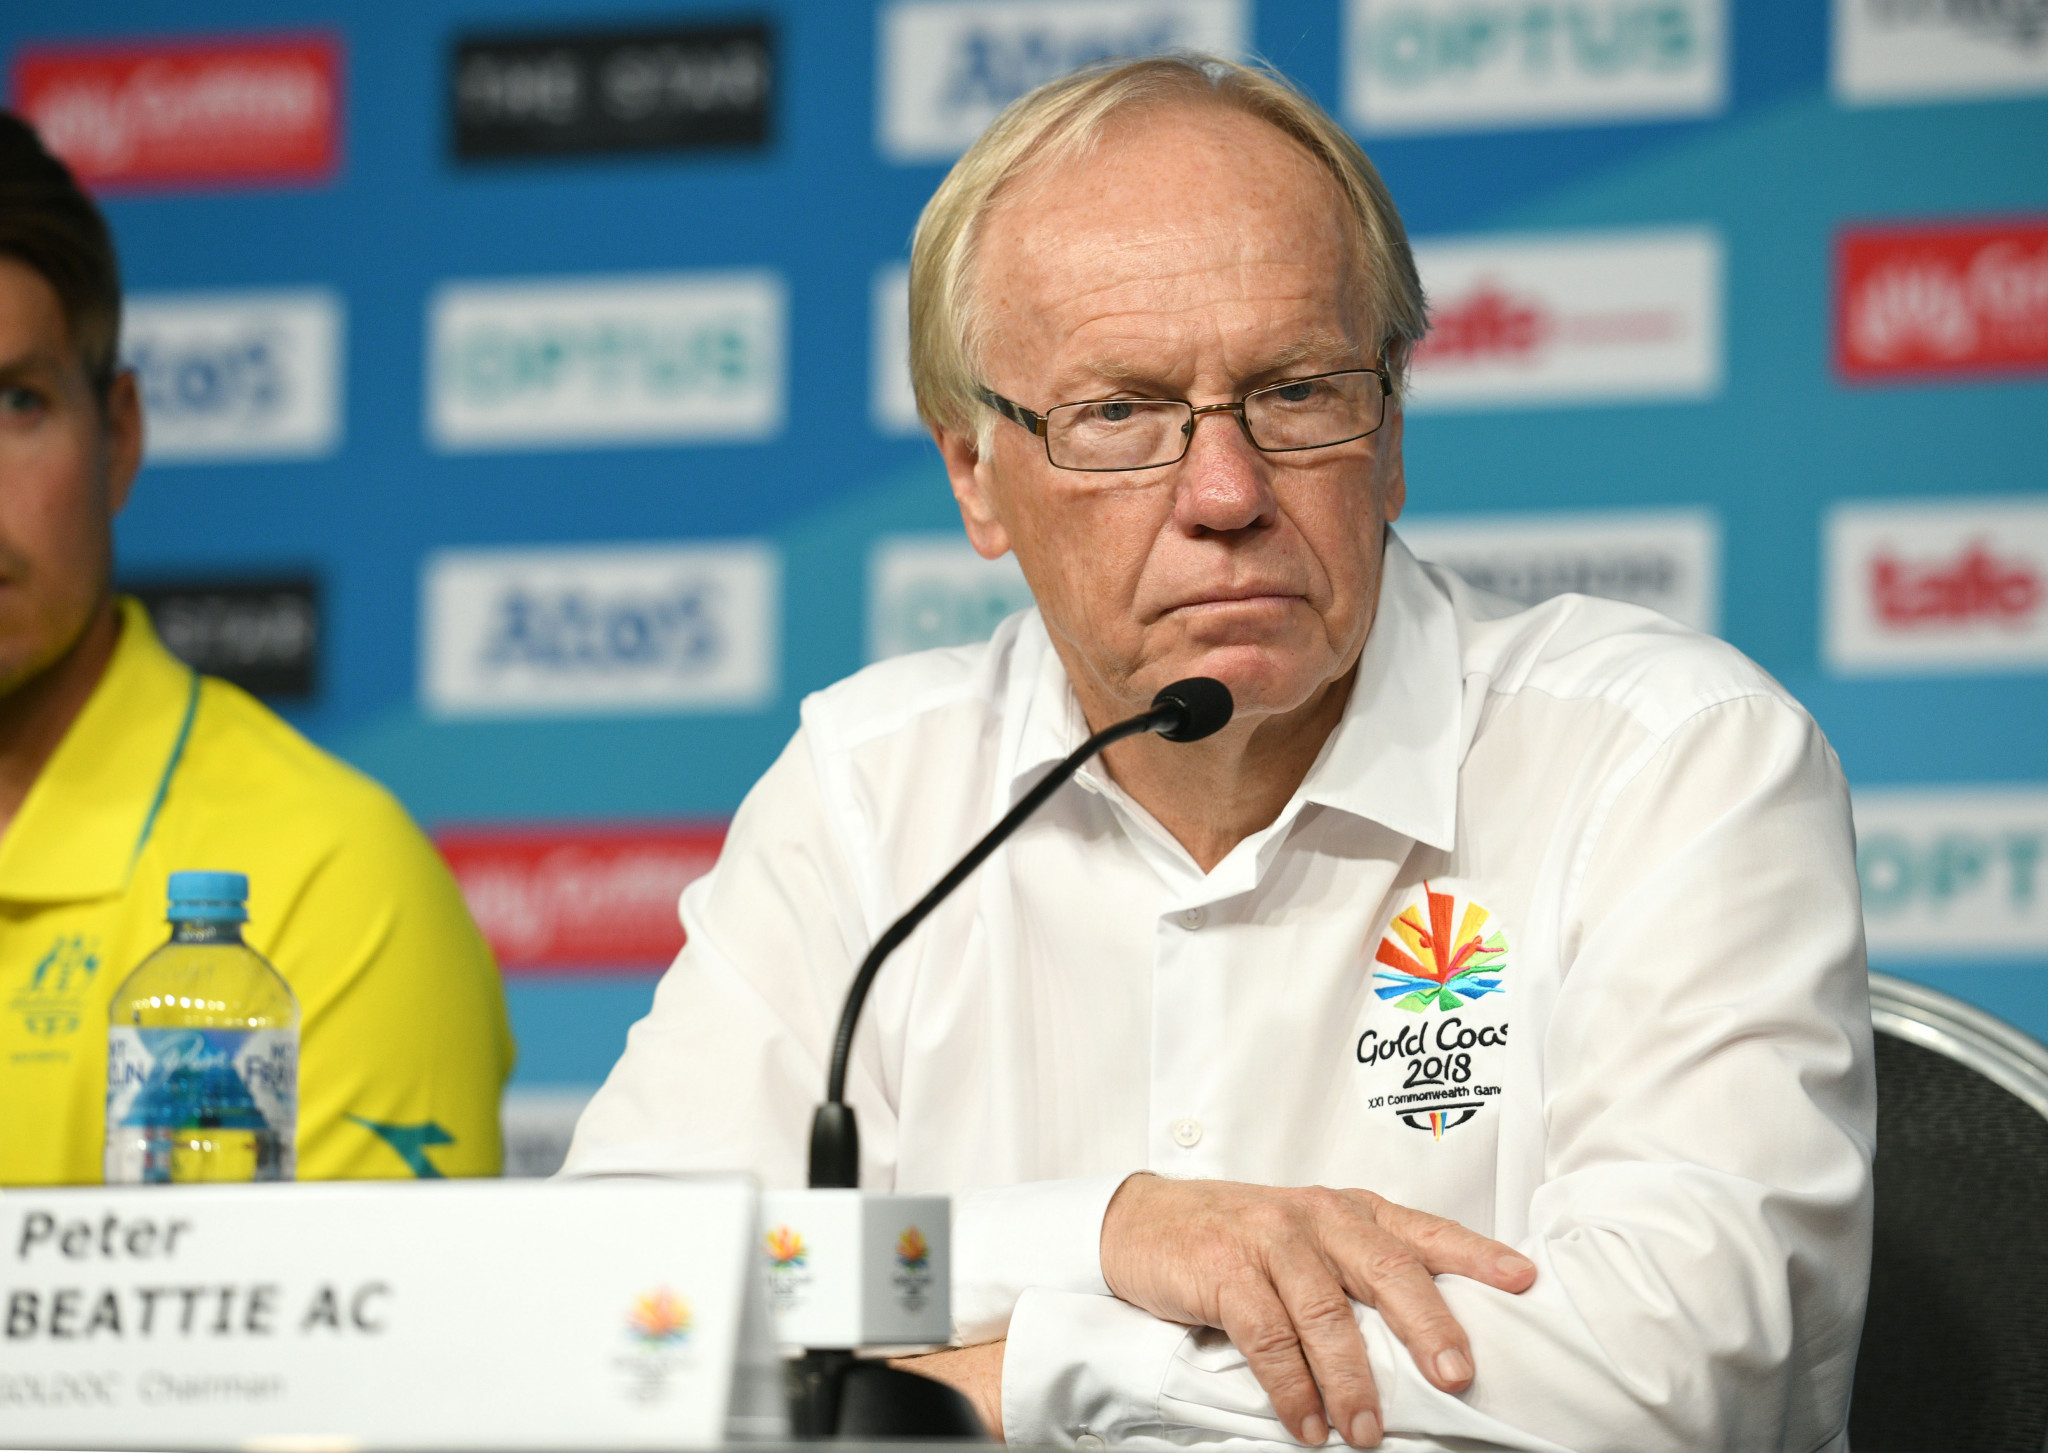 Gold Coast 2018 chairman Peter Beattie urged the athletes to abide by their visas rule ©Getty Images